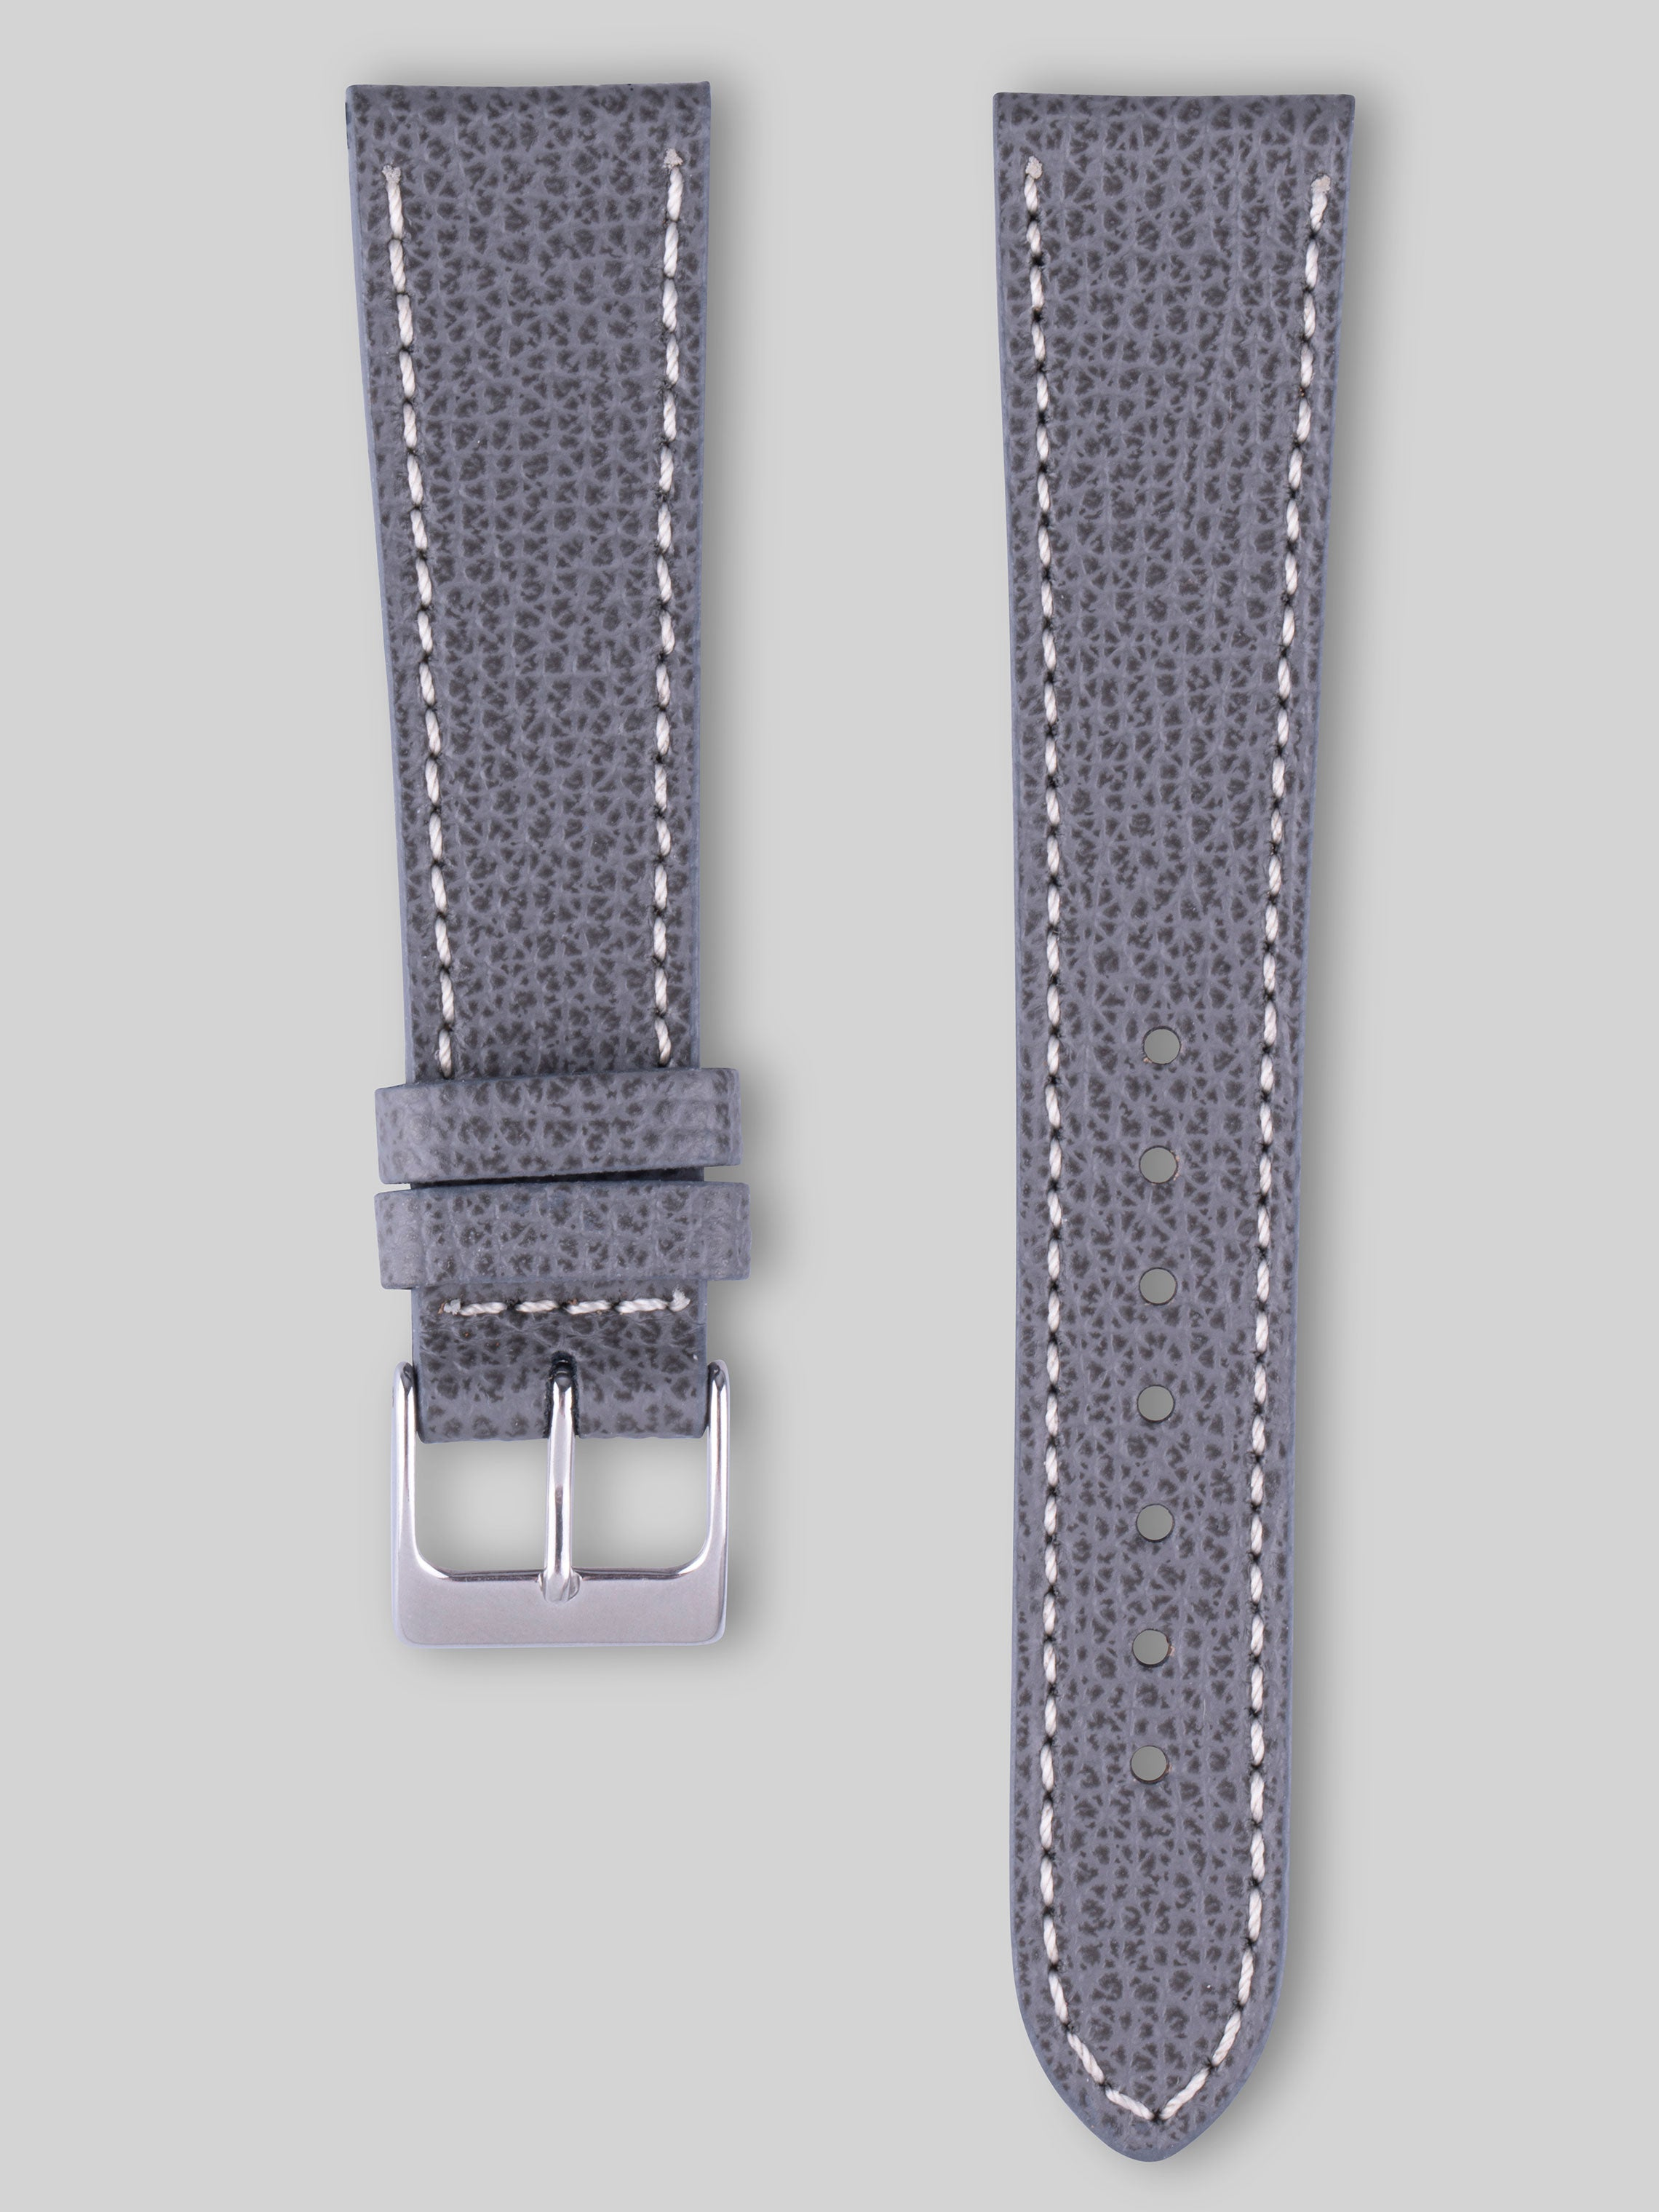 Textured Calfskin Watch Strap - Carbon